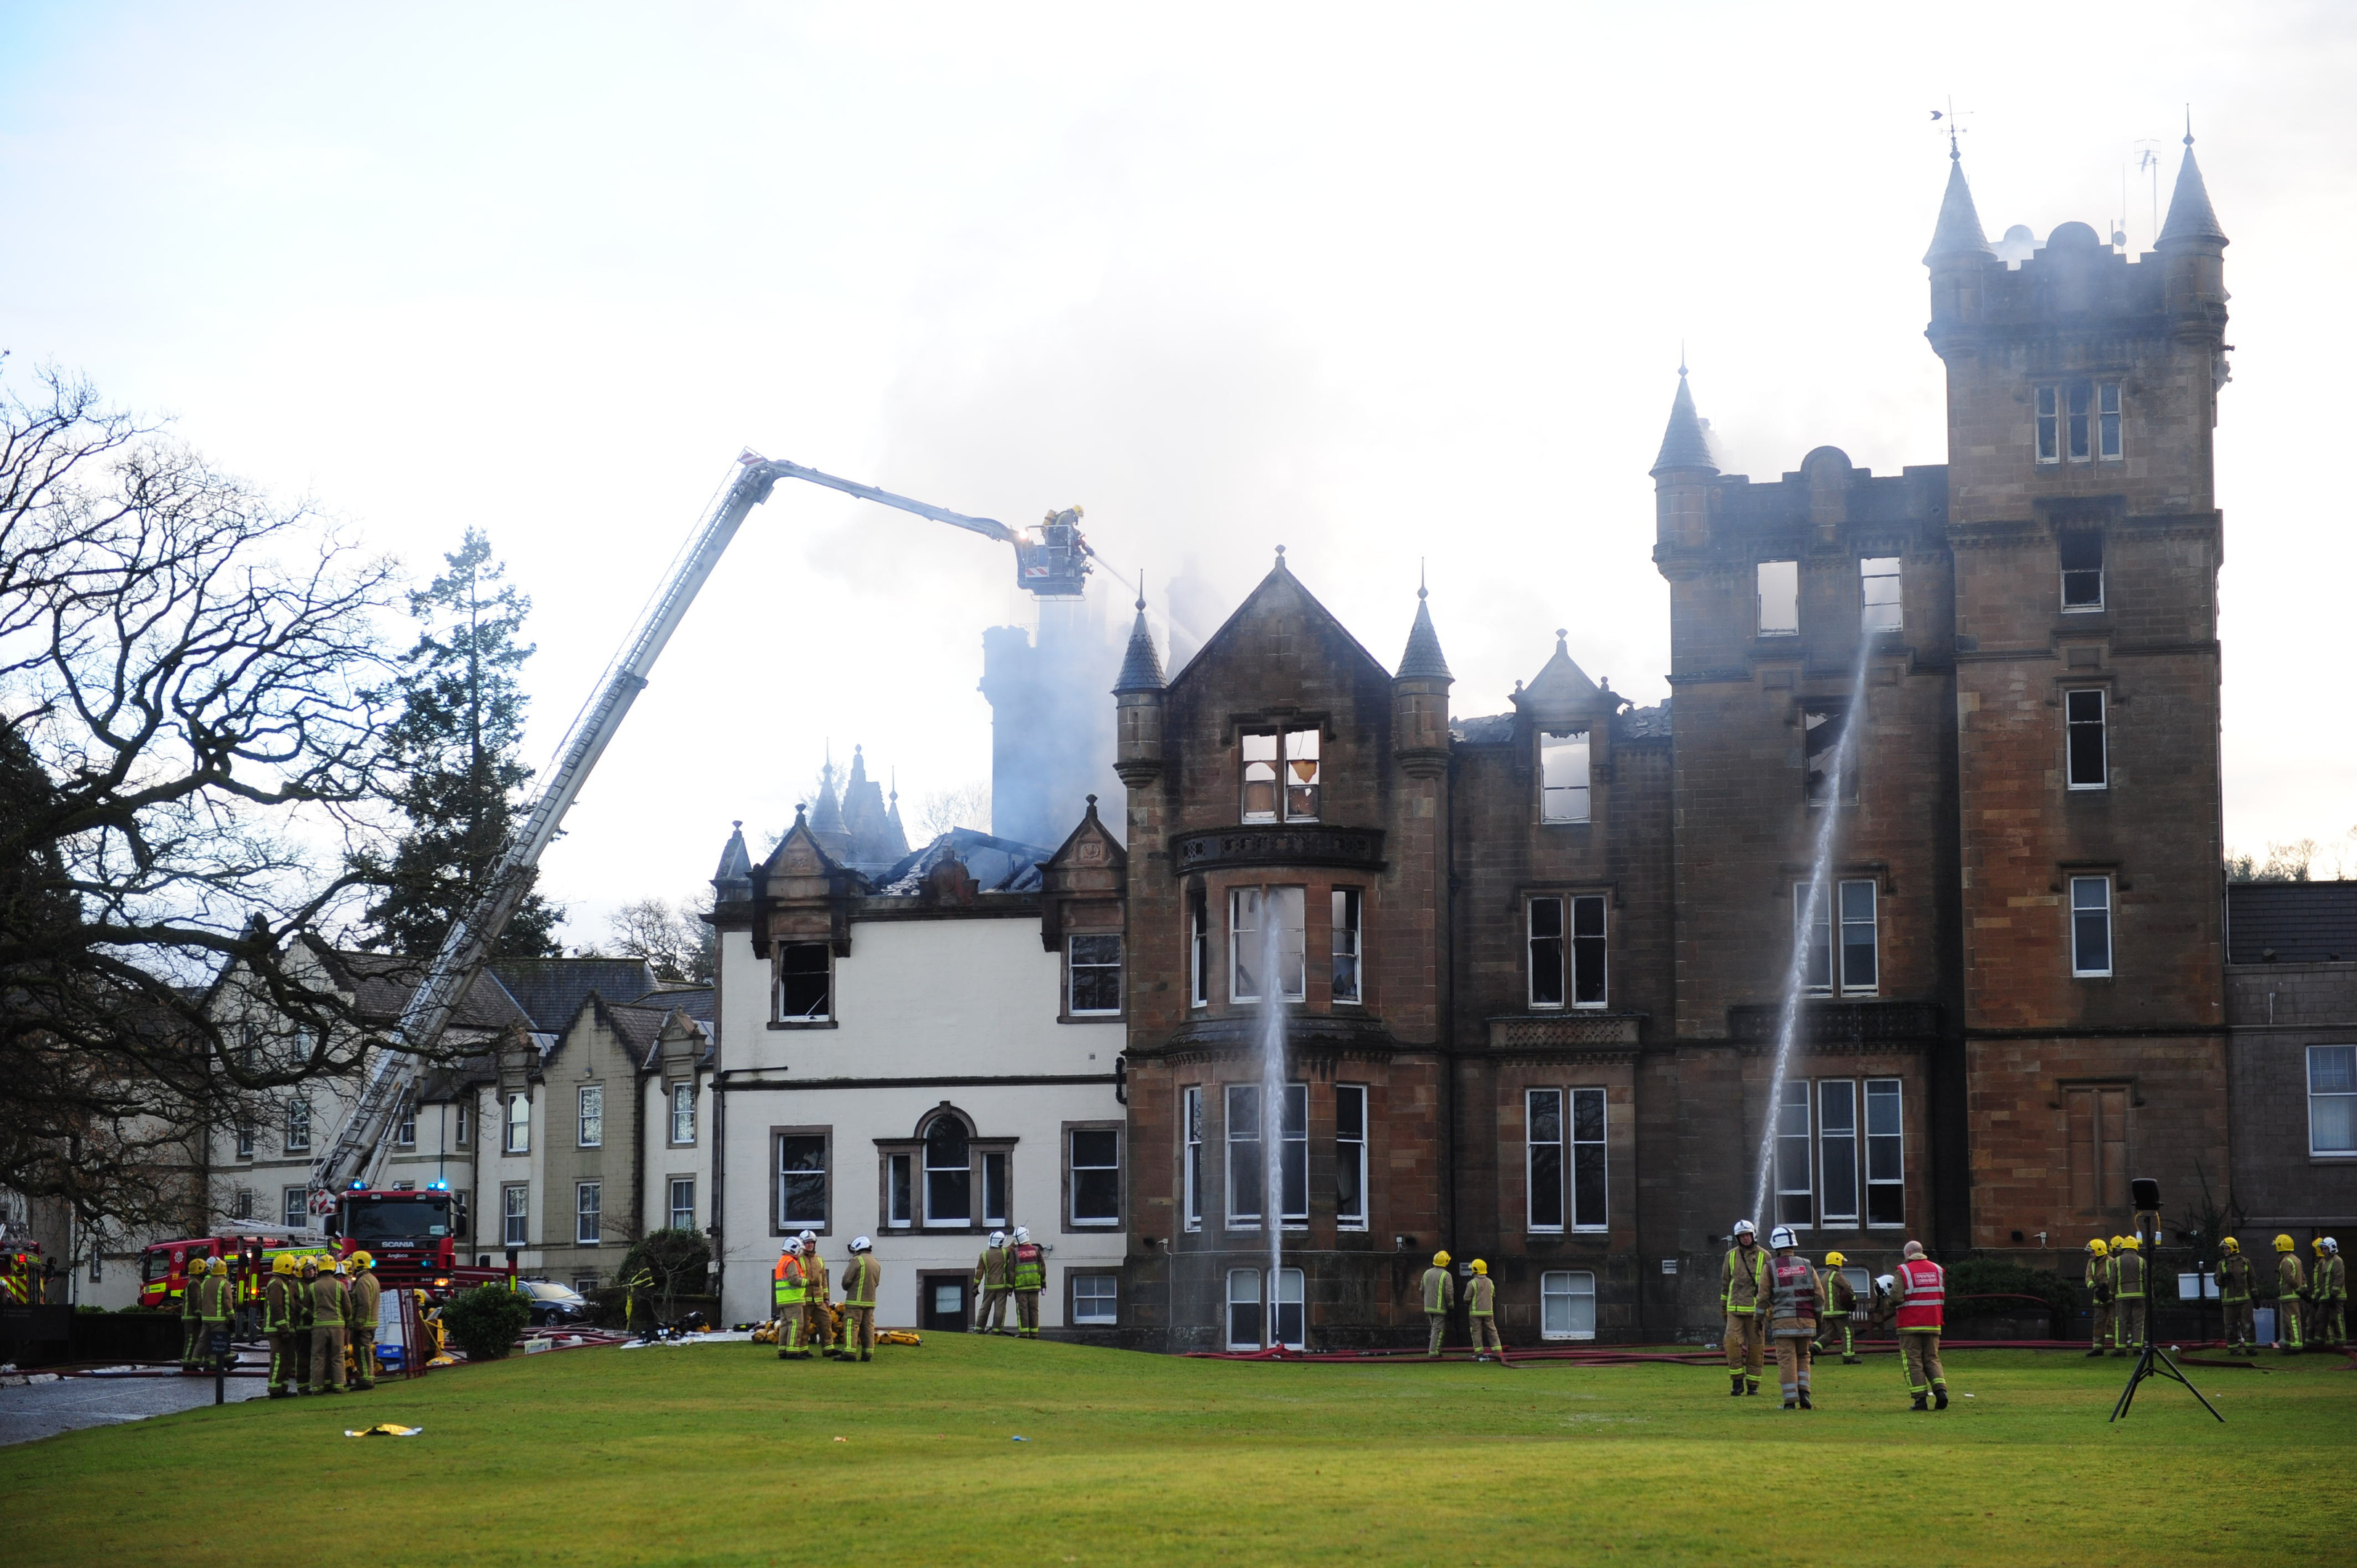 Firefighters at the scene following a fire at the Cameron House Hotel on the banks of Loch Lomond (Mike Gibbons/PA Wire)